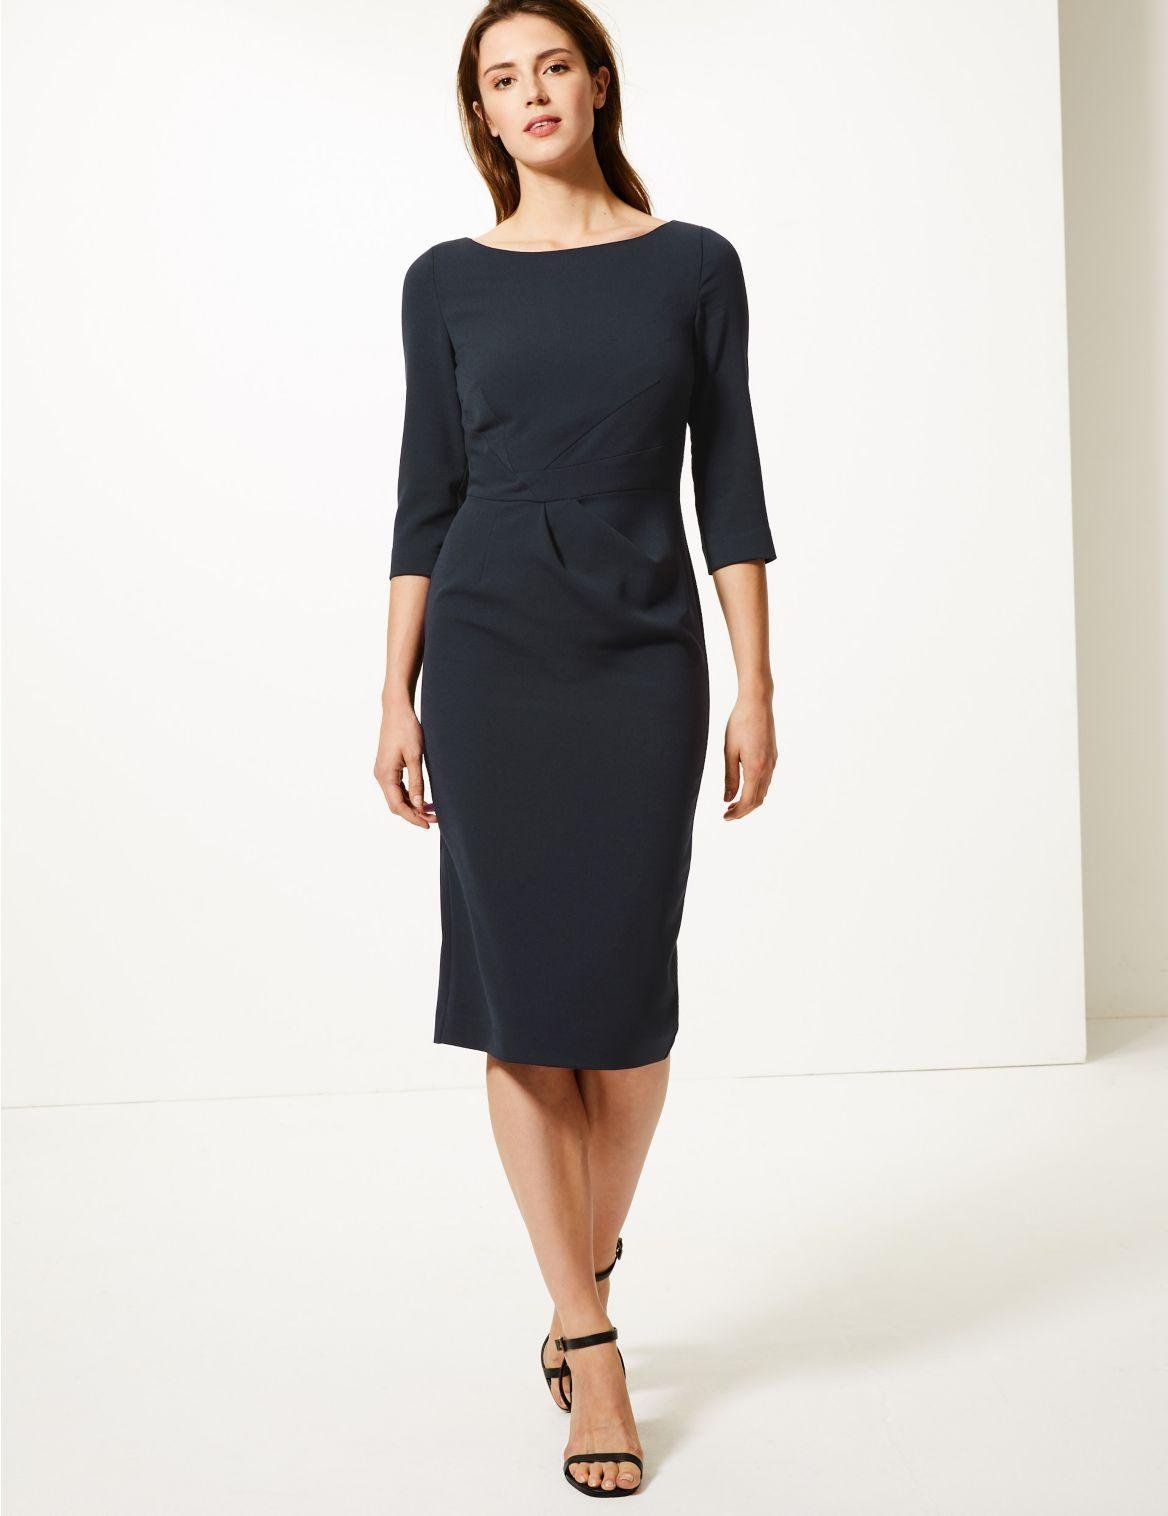 Marks and spencer bodycon dresses in women